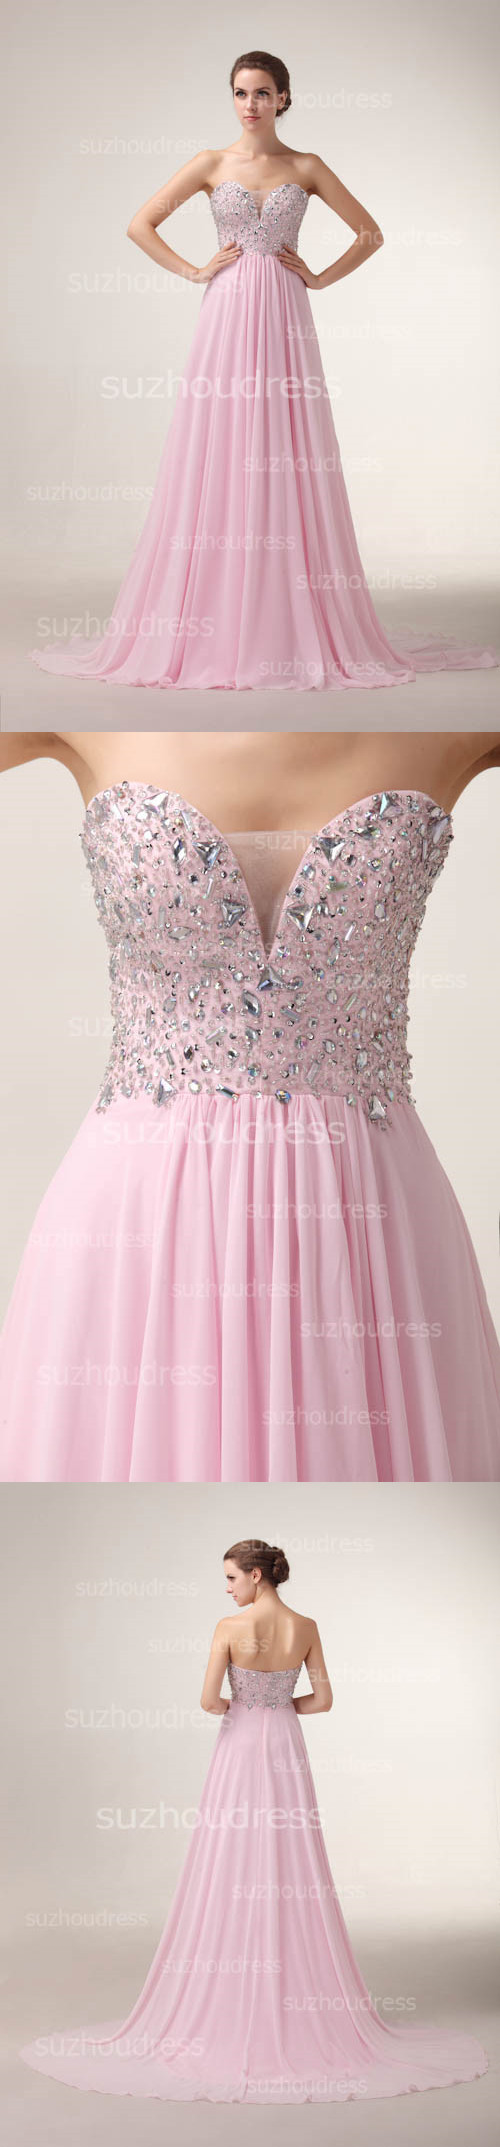 2015 Gorgeous Evening Dresses Sweetheart Sleeveless Crystal Sequined ...